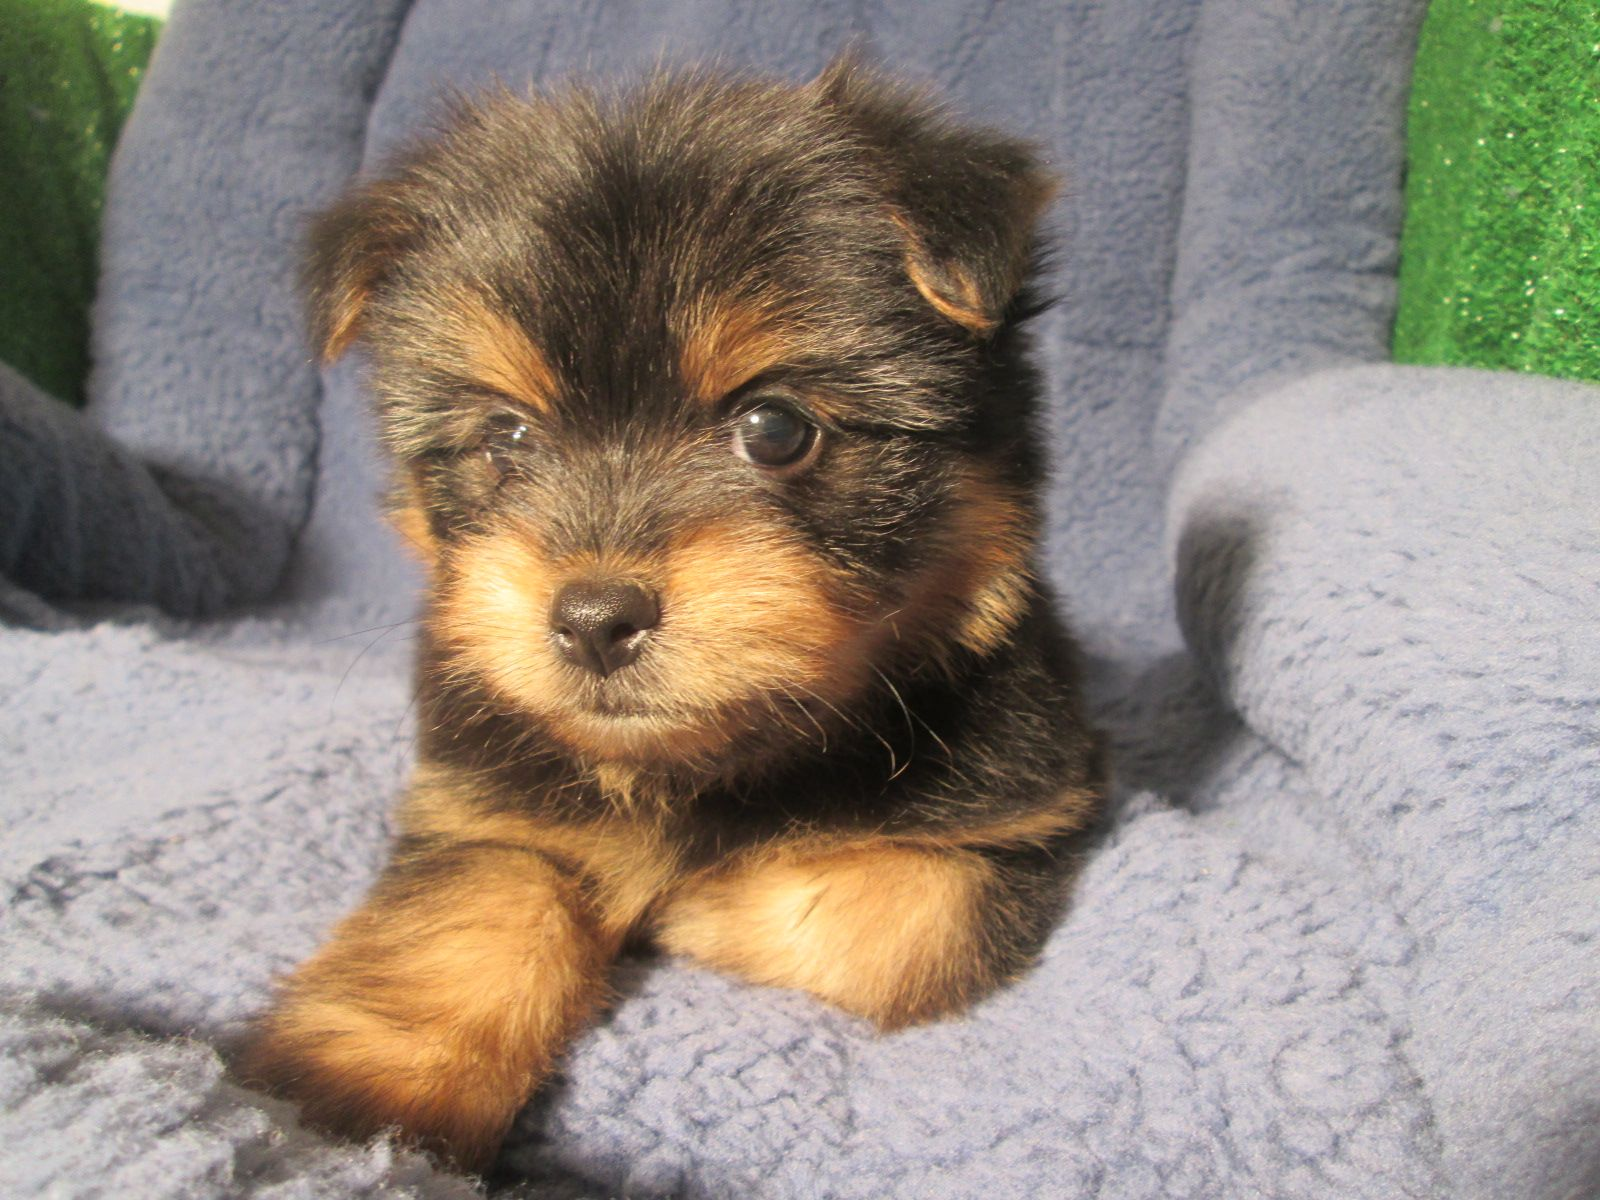 Unique Yorkiepom Puppies Available Yorkie X Pomeranian 8 12 Weeks Of Age Permanent Shots And Wormings Completed Along With Microchipping We Offer Ex